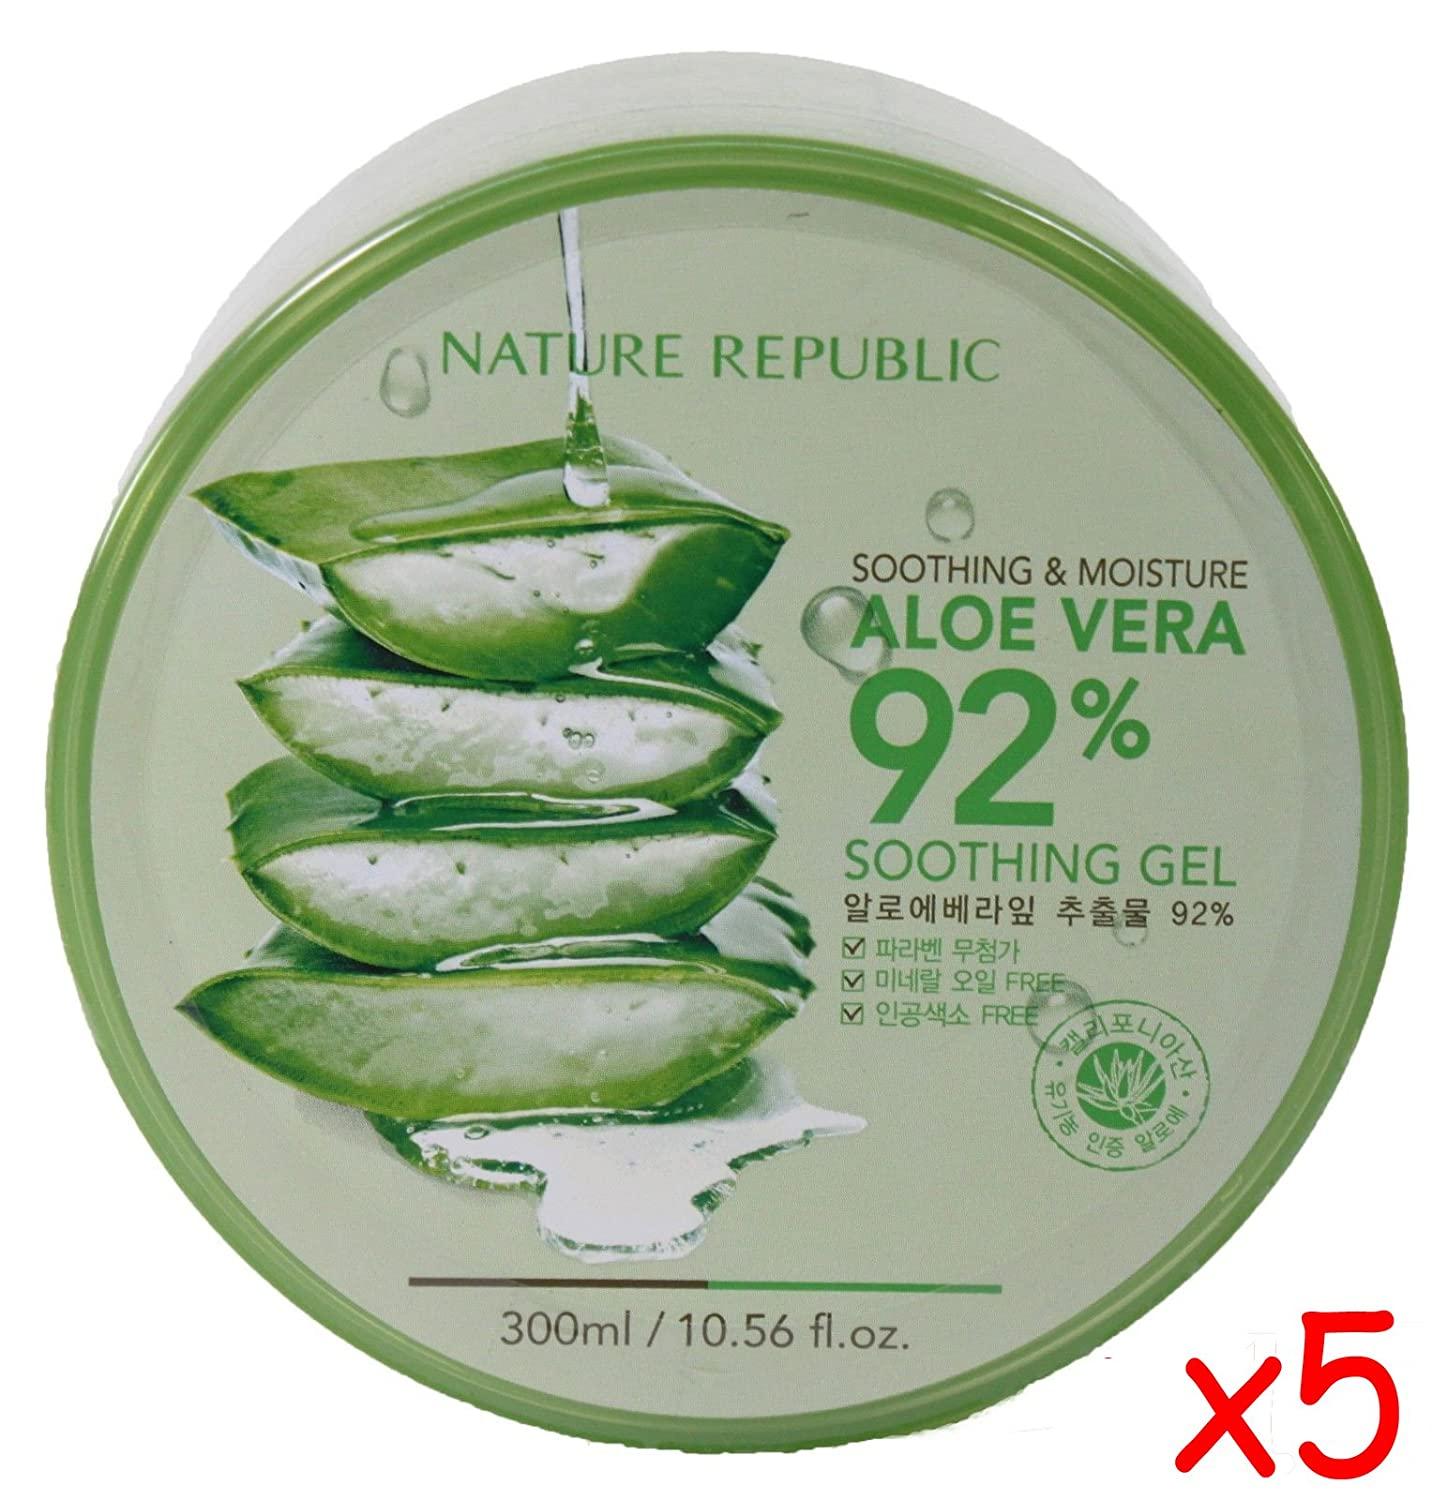 Nature Republic Skin Soothing Moisture Aloe Vera 92 Natural Gel Value Pack of 5